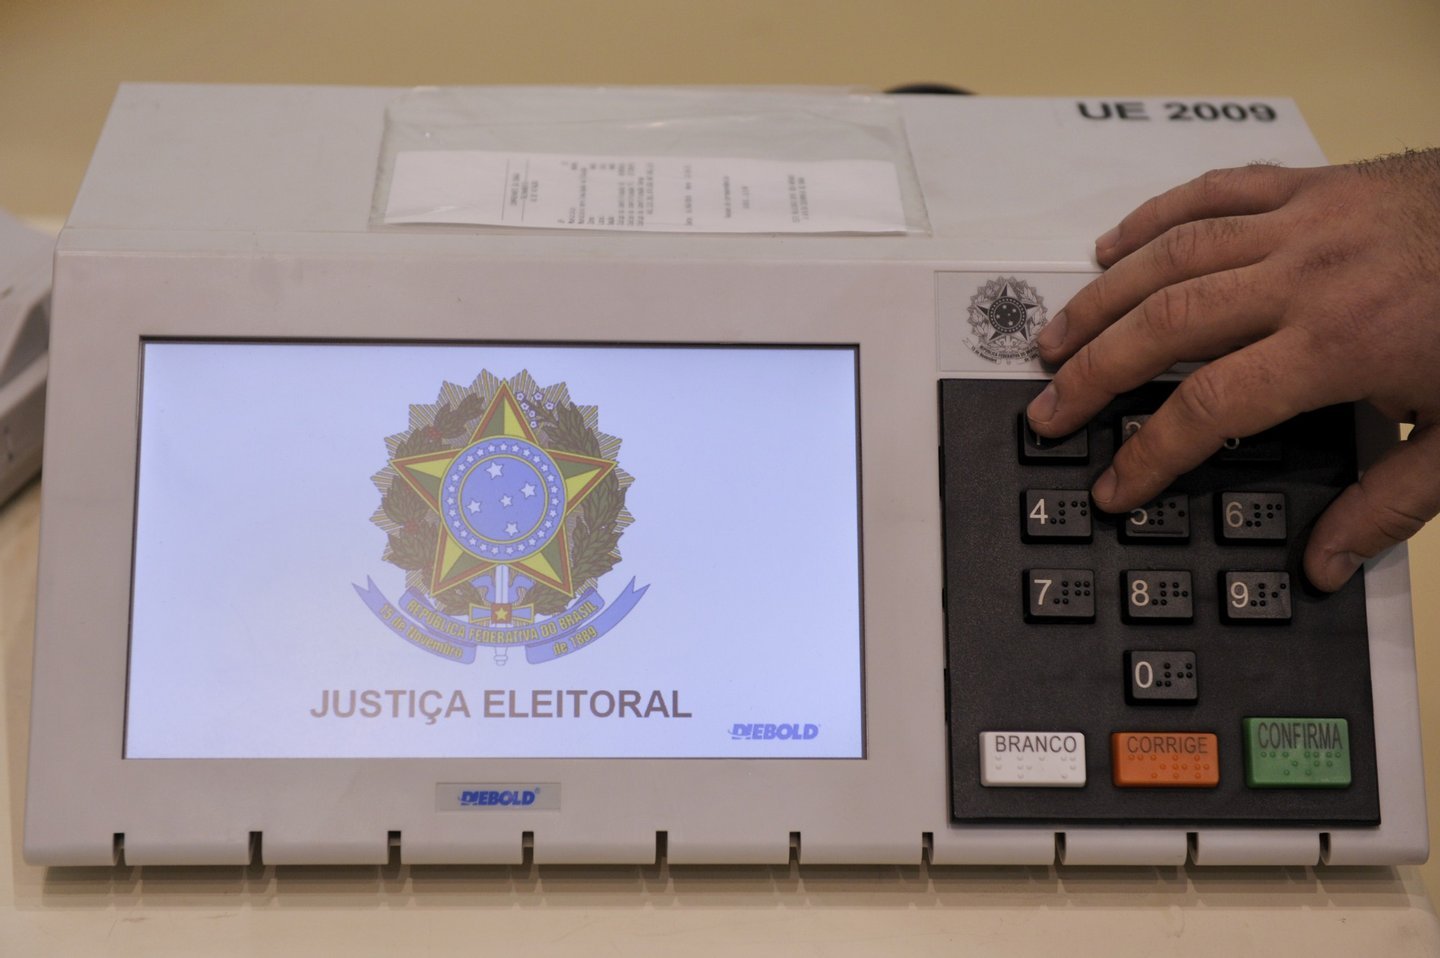 Brazilian researchers demonstrate how to carry out a series of simulated tests to certify the that the electronic voting machines to be used in next October's election work according to the requirements and are not submitted to any fraudulent manipulation, during a press conference at the National Institute for Space Research (INPE) headquarters, in Sao Jose dos Campos, some 90 km north of Sao Paulo, Brazil, on September 8, 2010. Brazil's general elections are scheduled for October 3. AFP PHOTO/Mauricio LIMA (Photo credit should read MAURICIO LIMA/AFP/Getty Images)